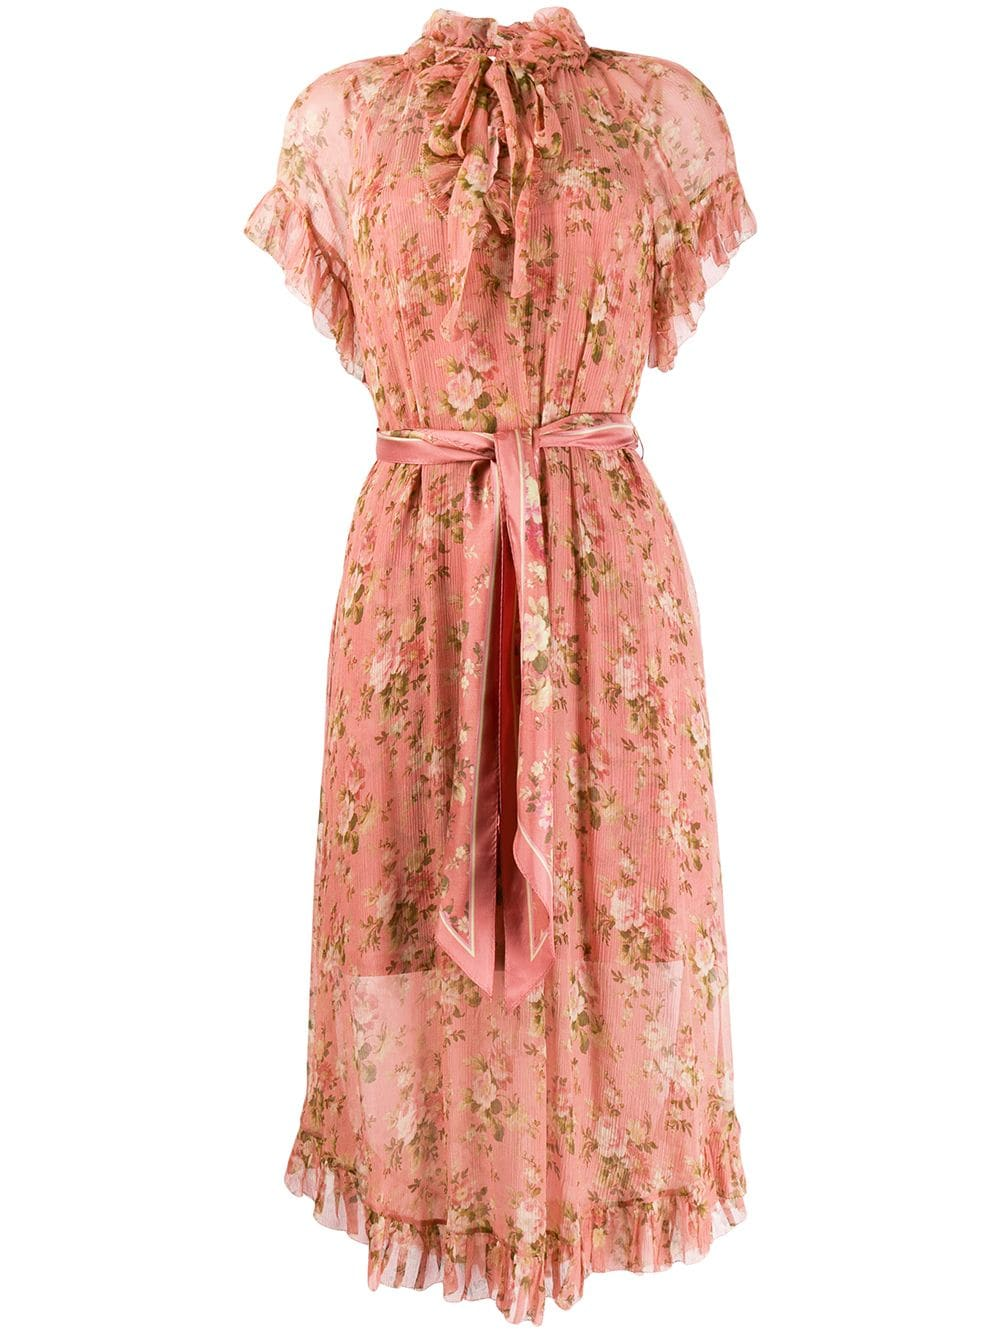 Floral Dress by Zimmermann